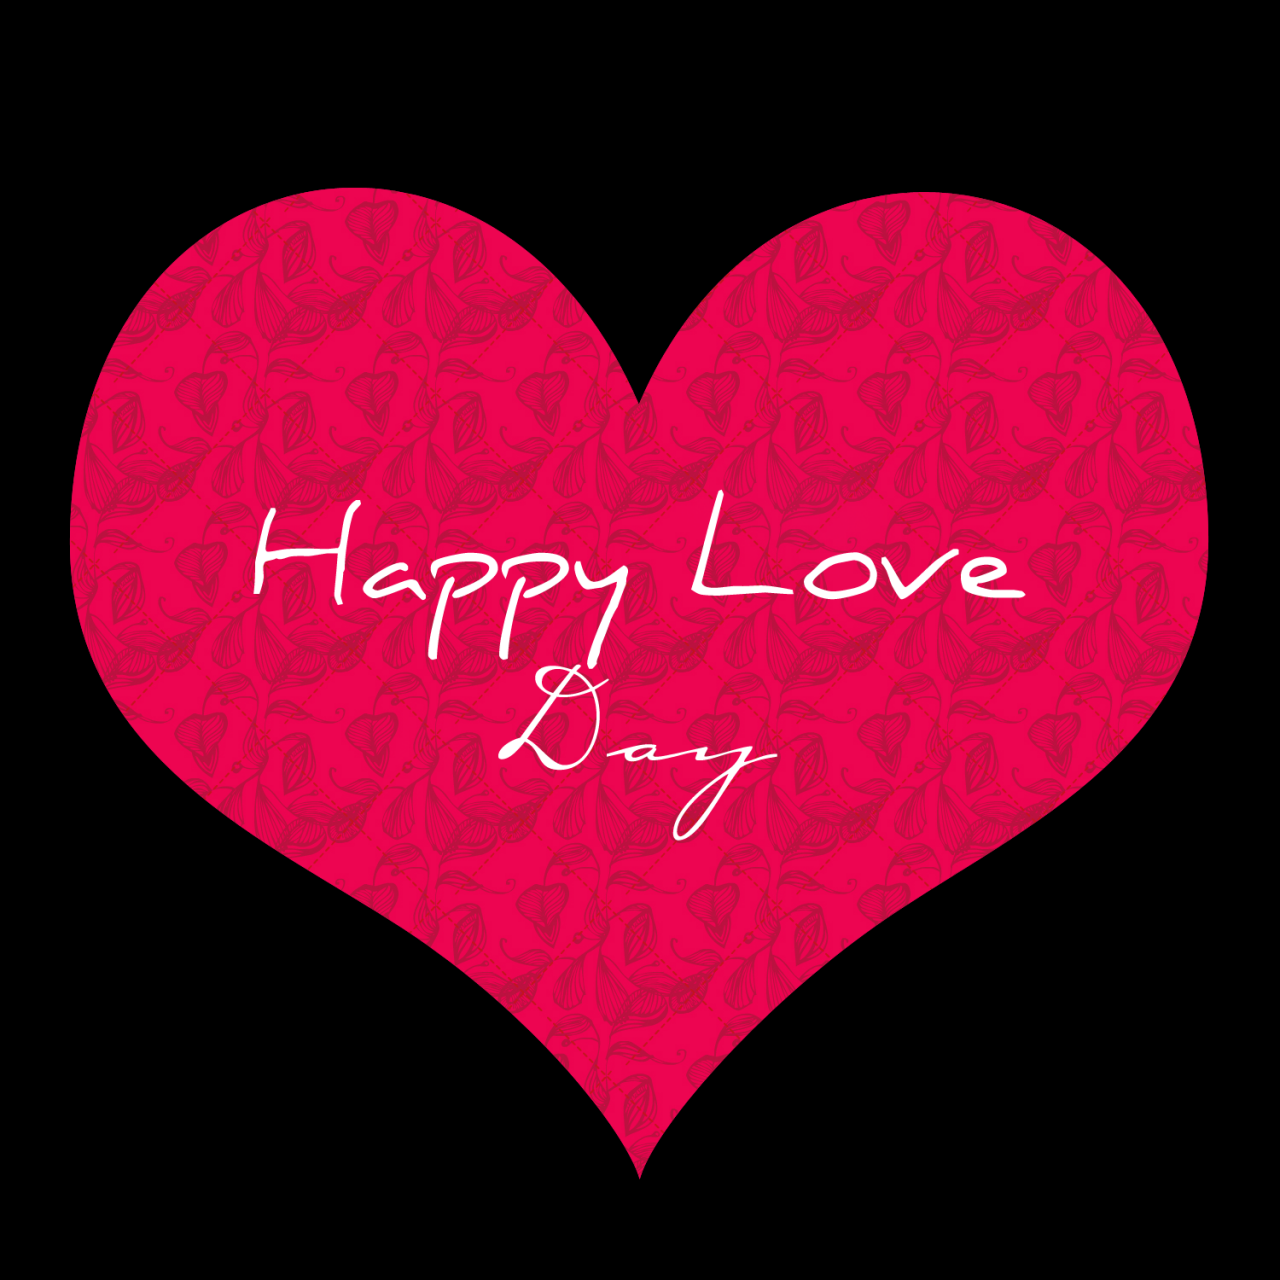 Happyloveday Radical Self Love